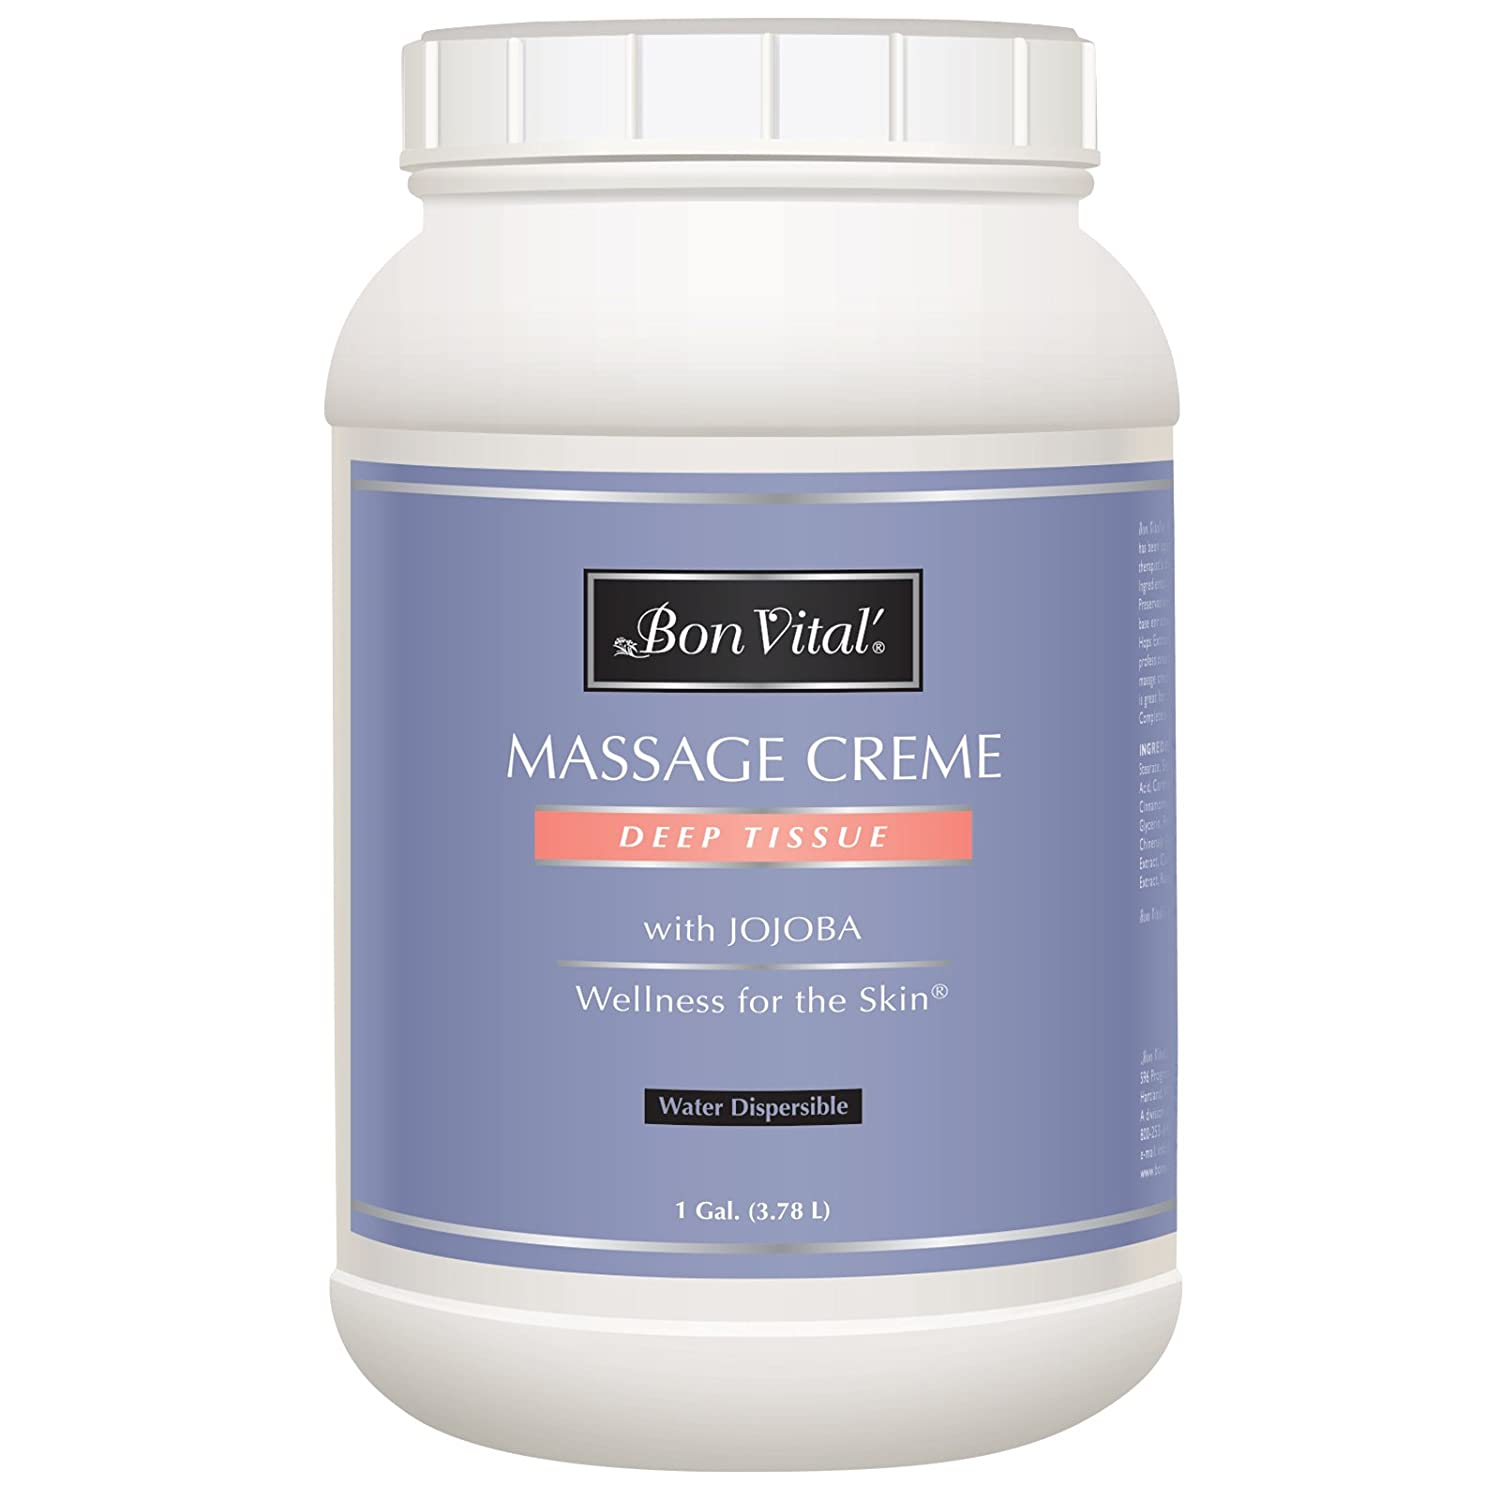 Bon Vital' Deep Tissue Massage Crème, Professional Massage Therapy Cream for Muscle Relaxation, Muscle Soreness, Injury Recovery, Deep Muscle Manipulation, Sports Massages, 1 Gallon Jar 61%2Br3TPpbuL